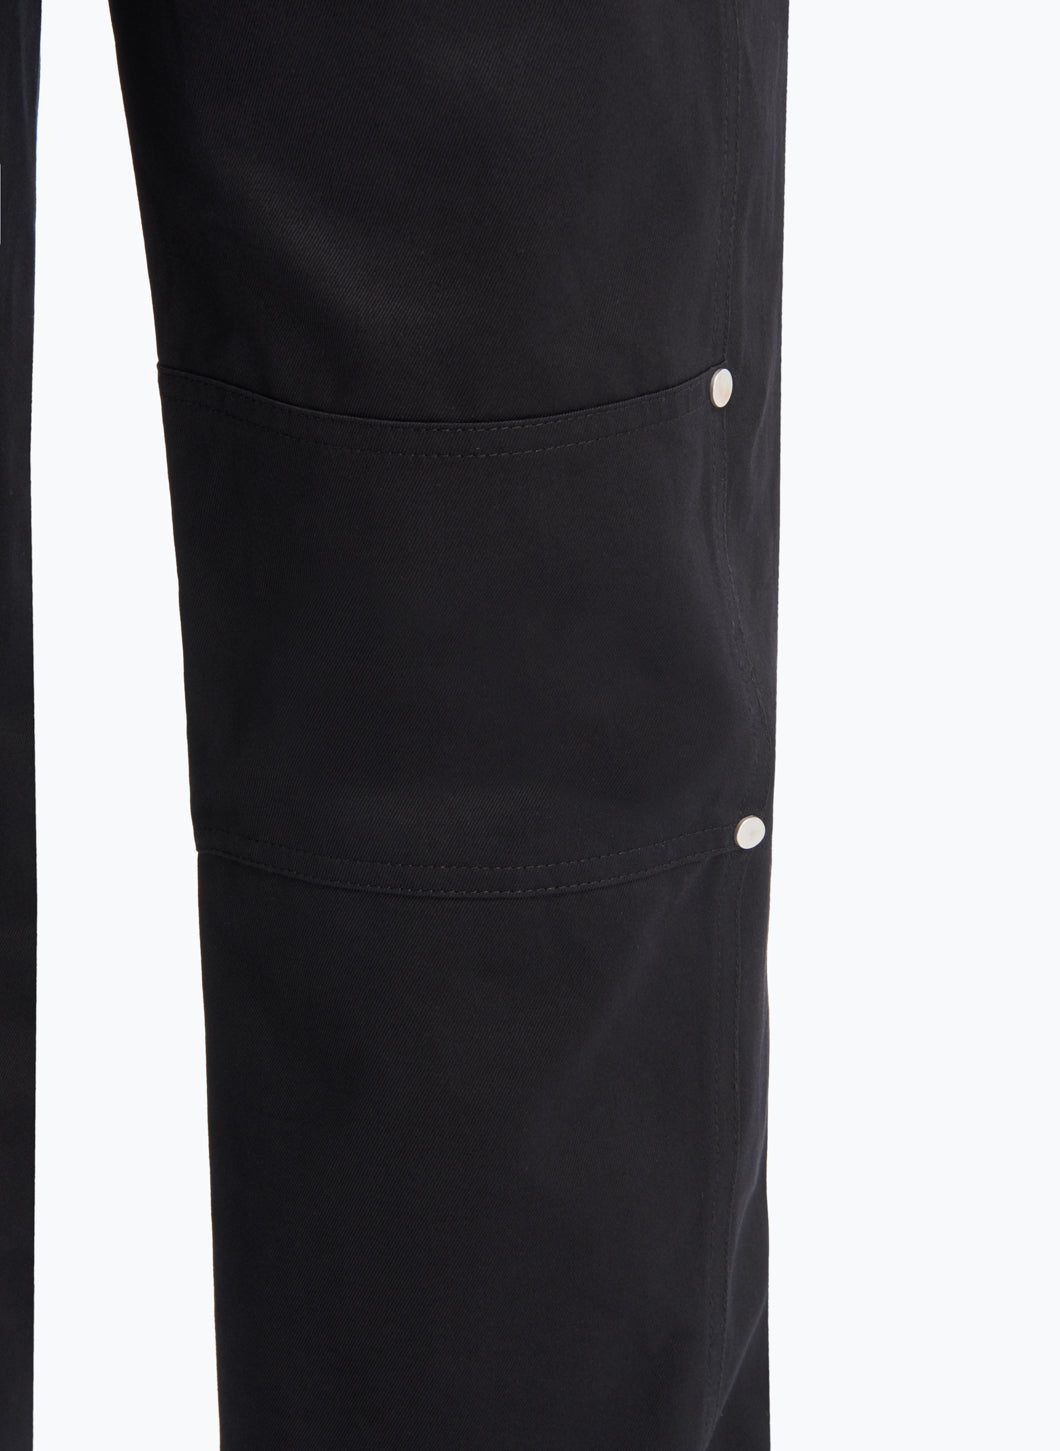 Overalls with Front Flap Pocket in Black Cotton Twill